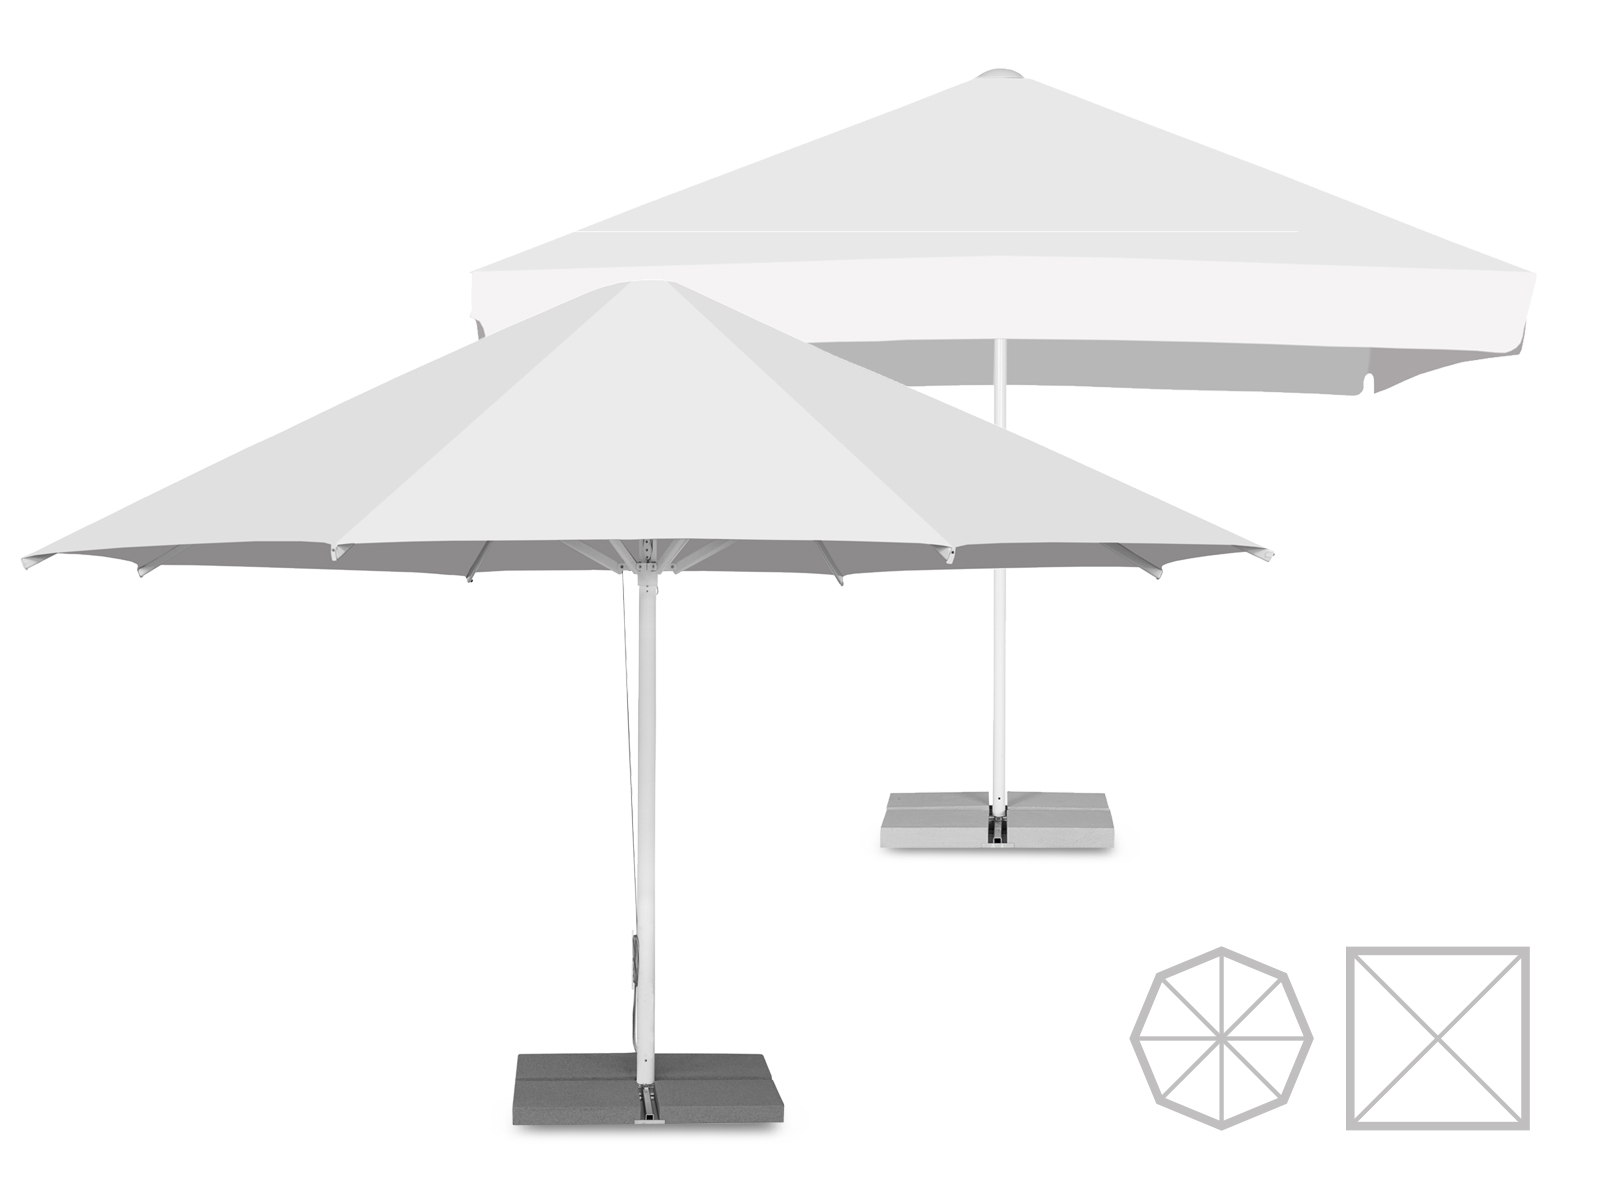 parasol publicitaire large choix de parasol publicitaire expoz. Black Bedroom Furniture Sets. Home Design Ideas